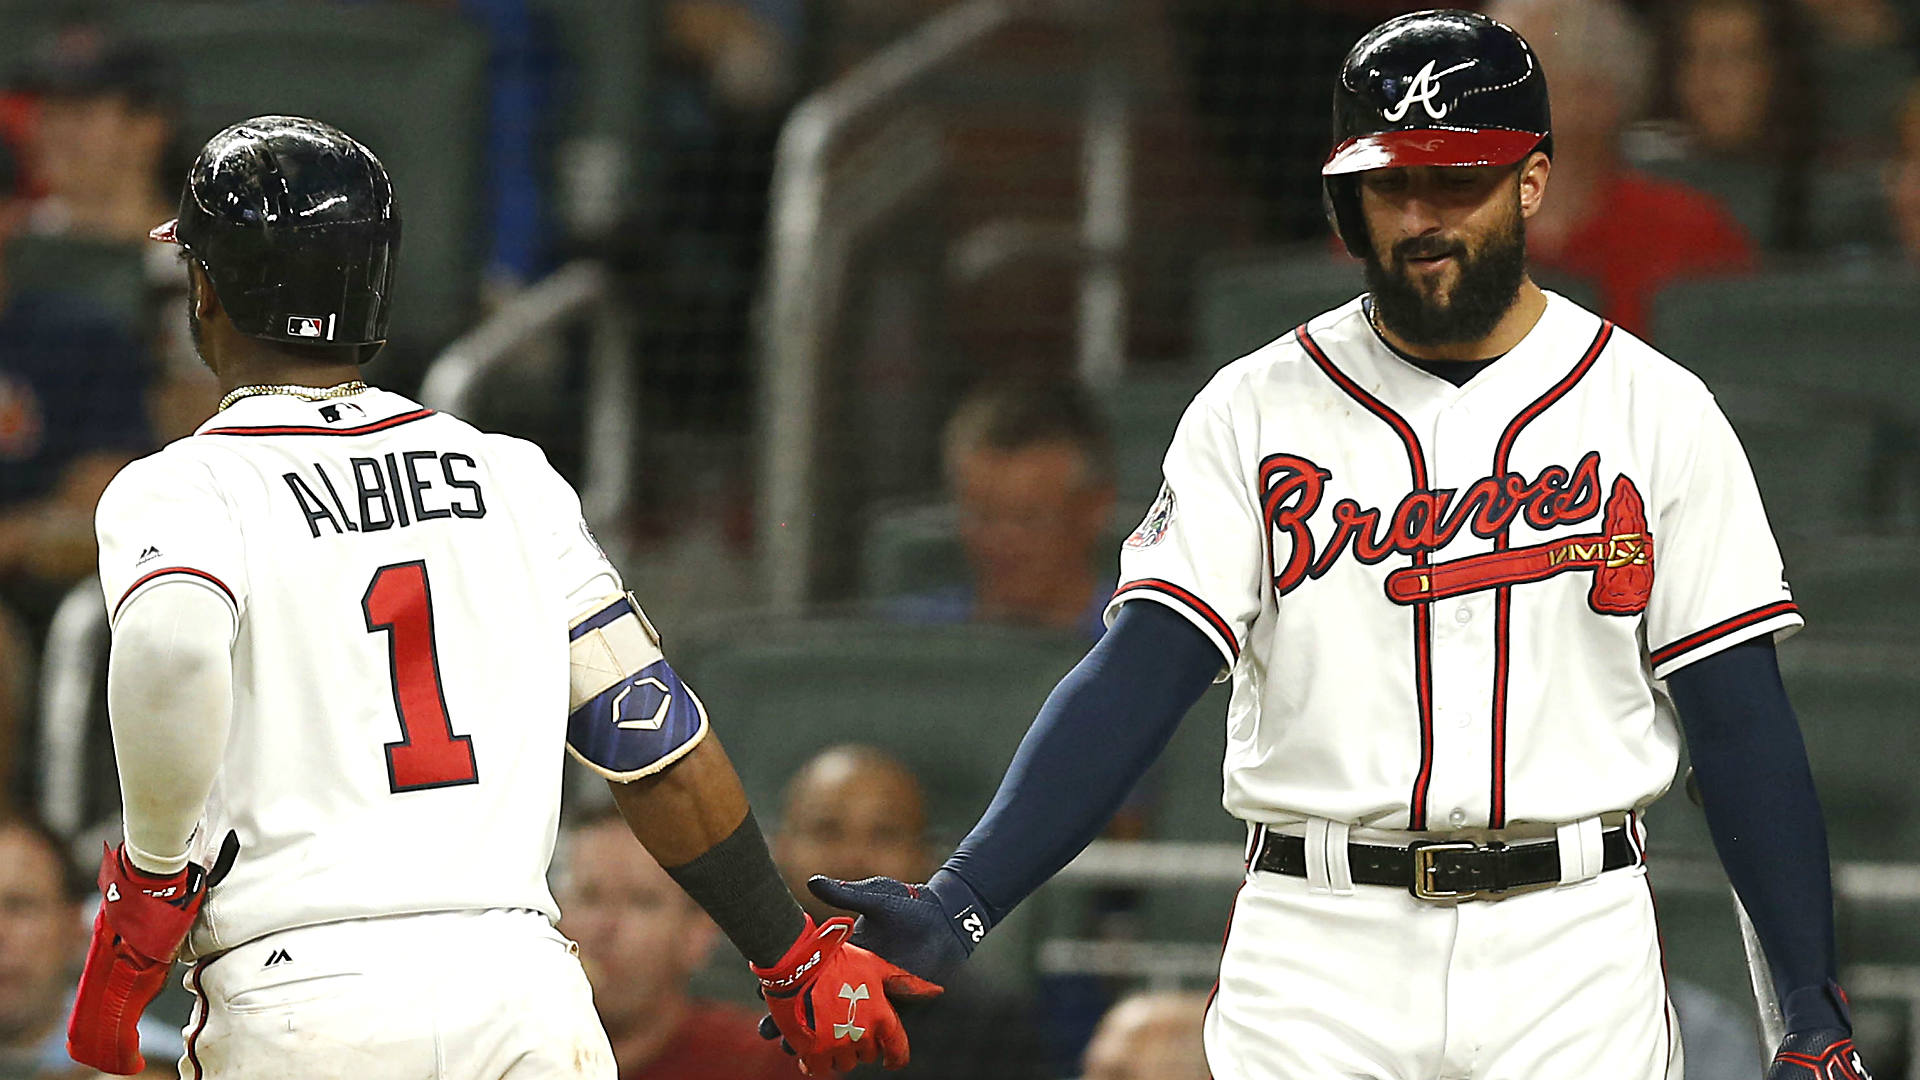 Braves lose 13 global  players in Major League Baseball  sanctions